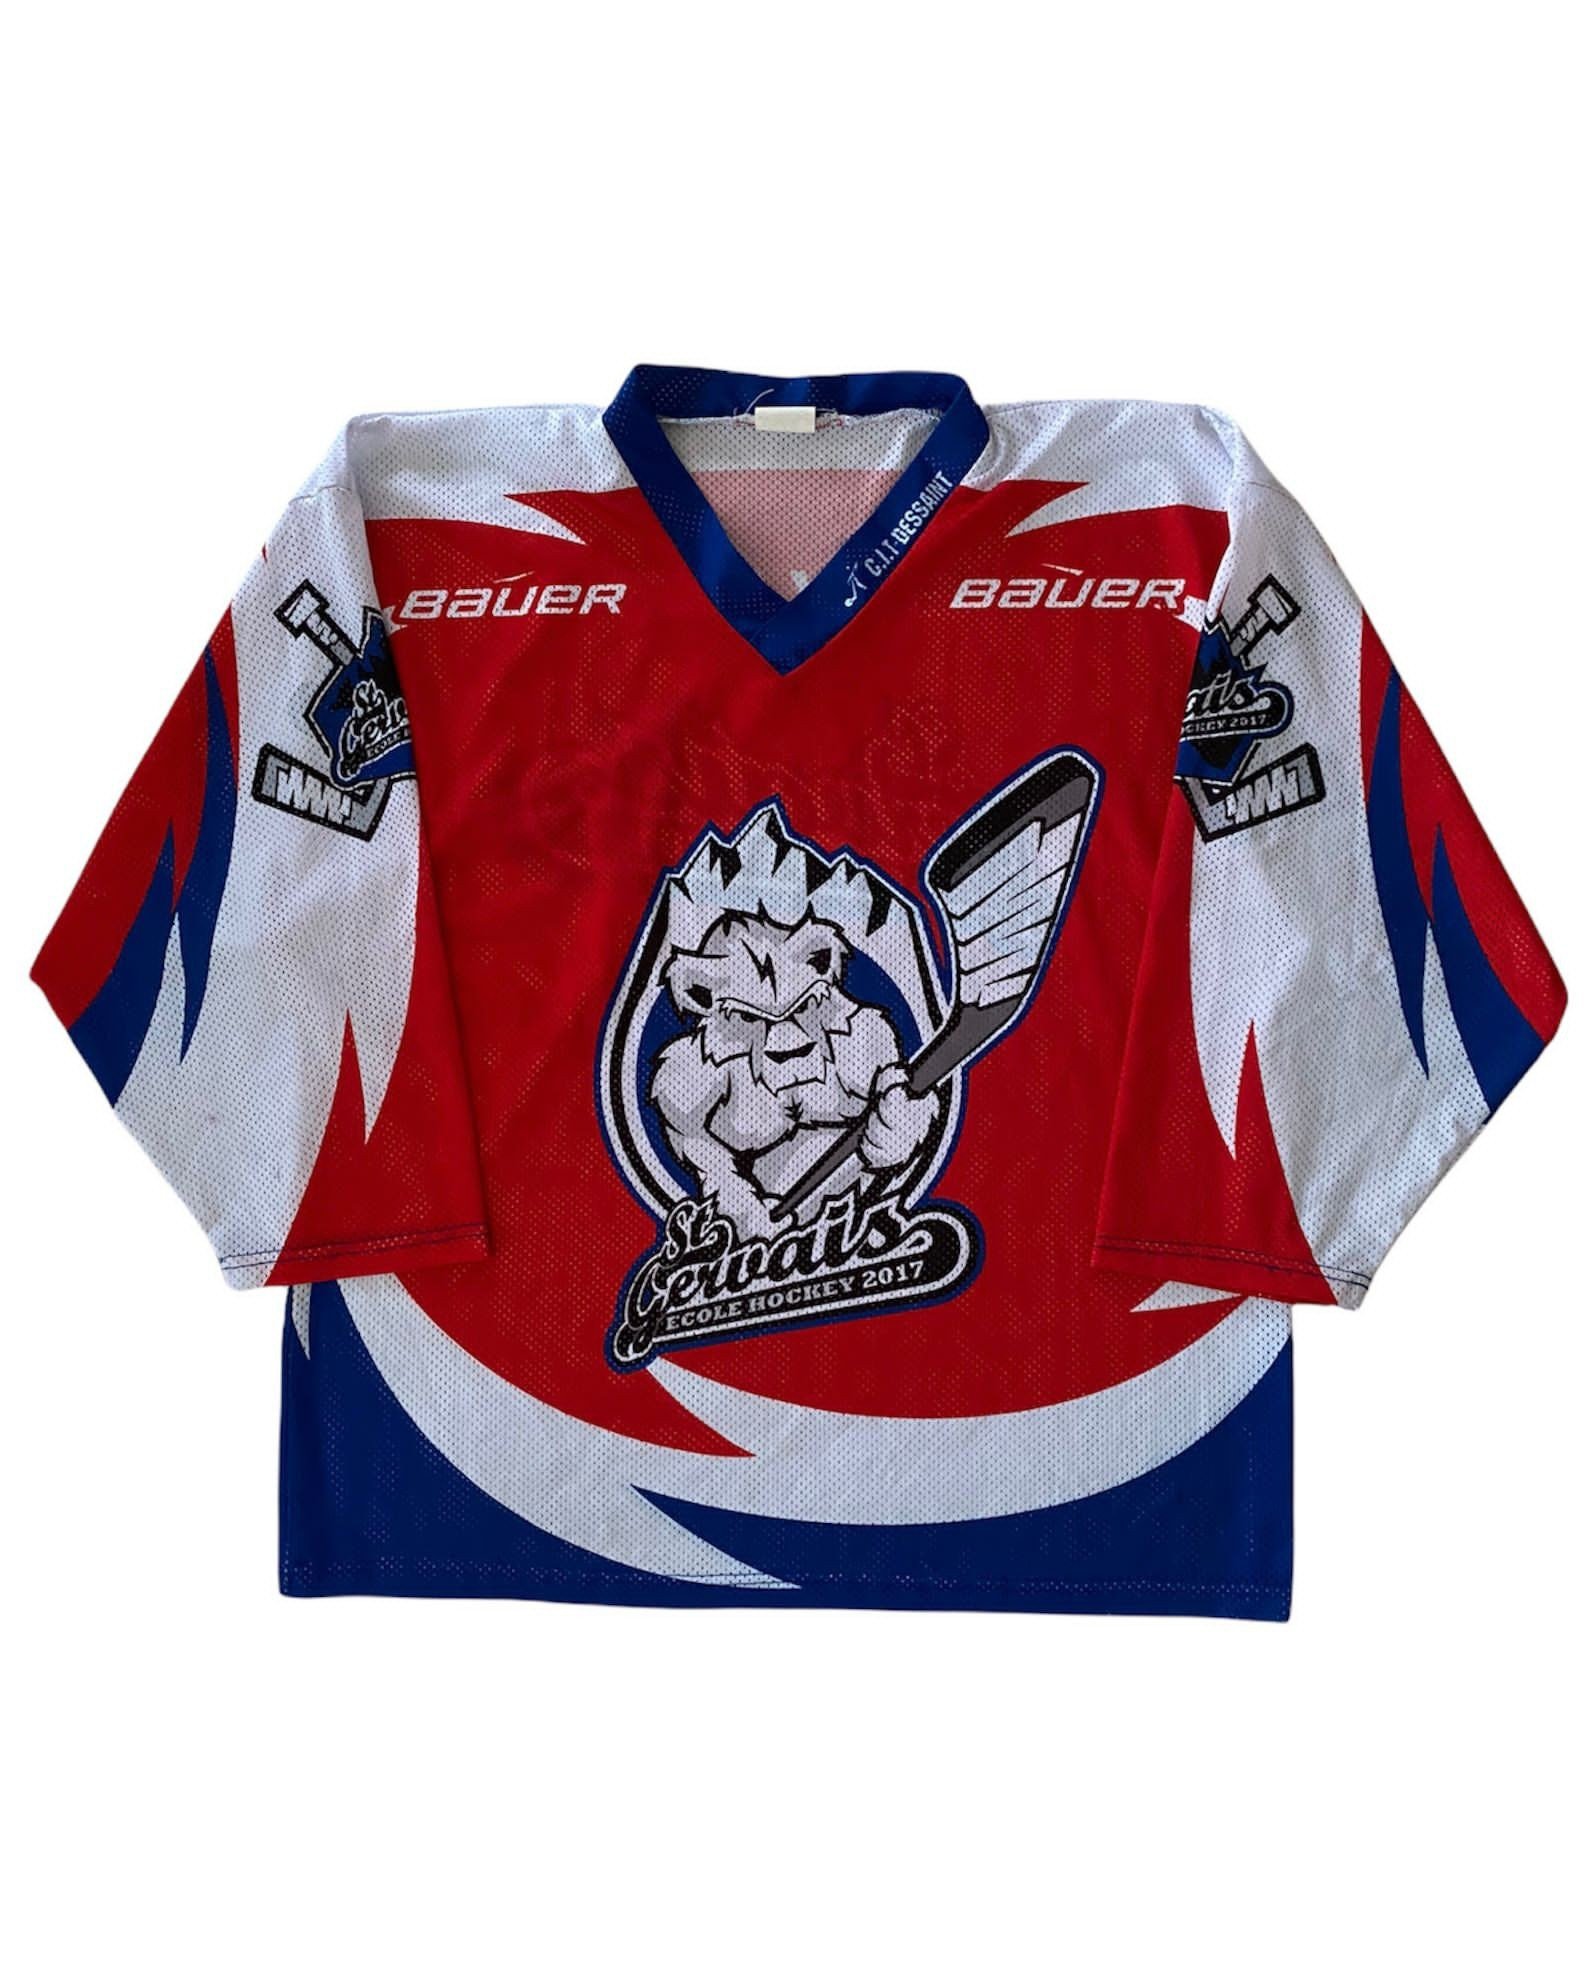 St Gervais Eagle Hockey Jersey (M)